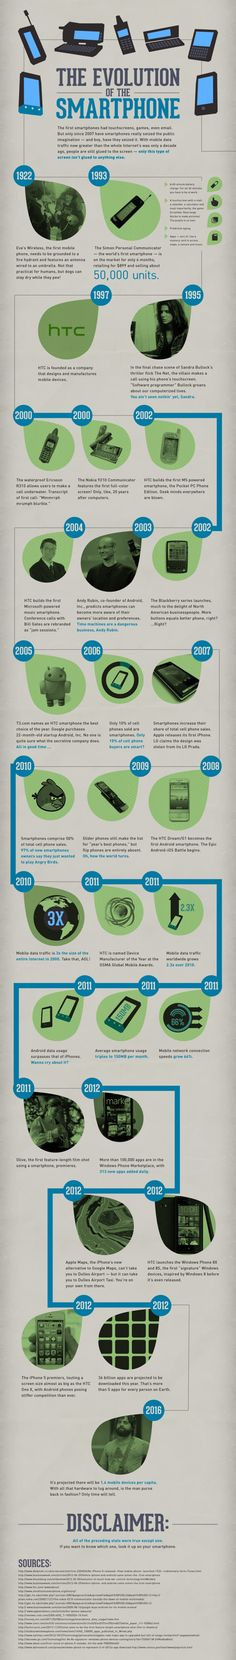 Smartphone evolution through the eyes of HTC (almost  misplaced)